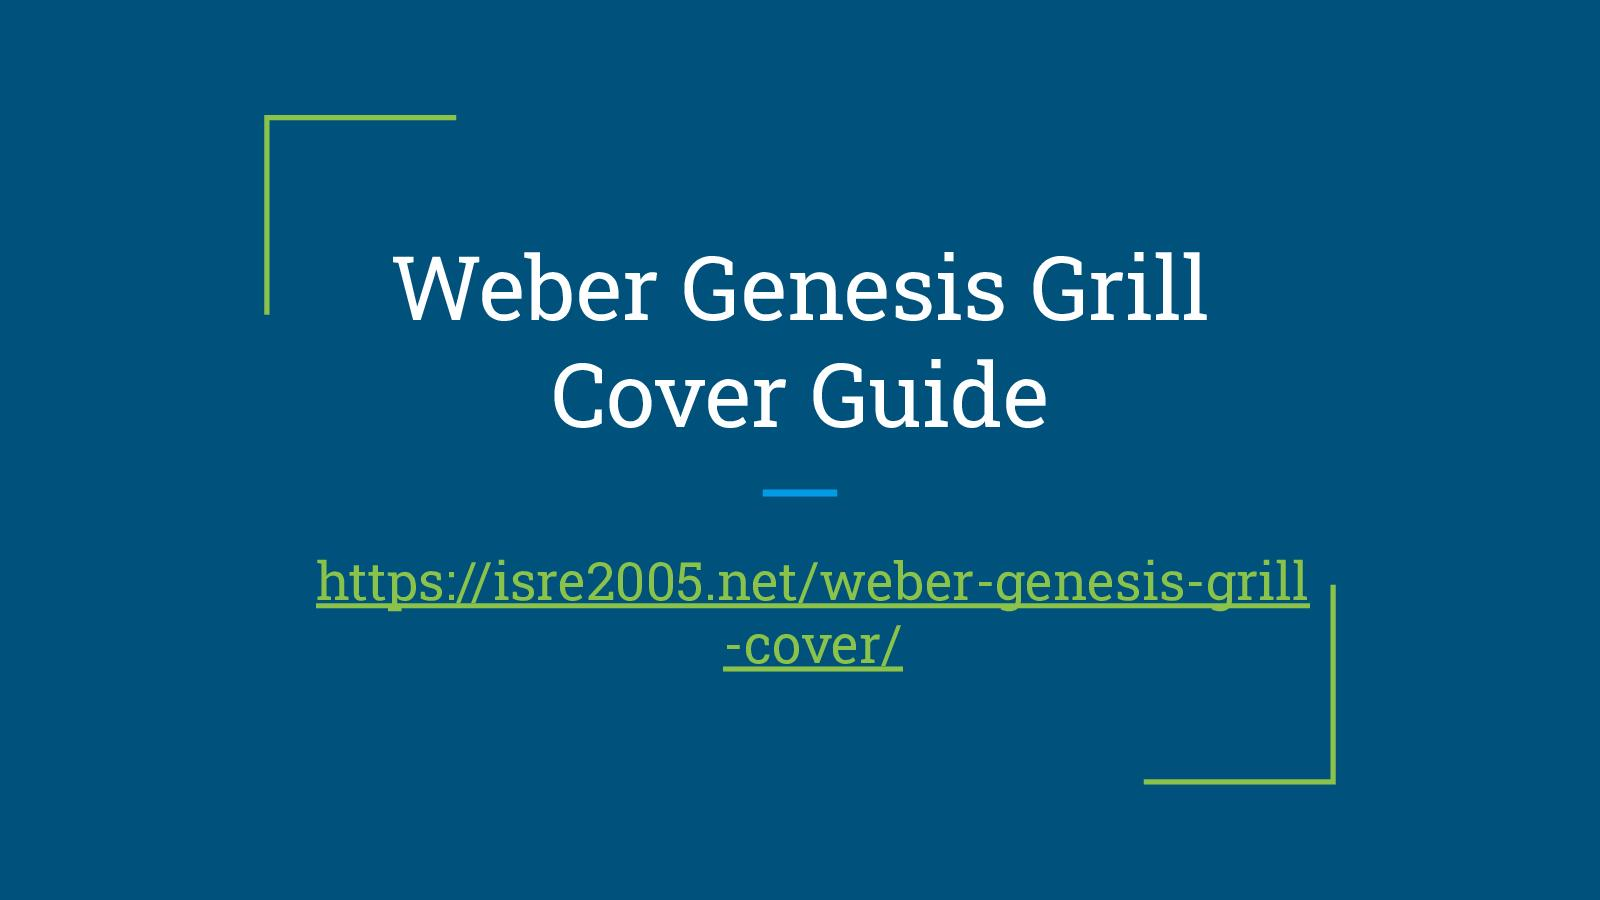 Weber Genesis Grill Cover Guide Pdf